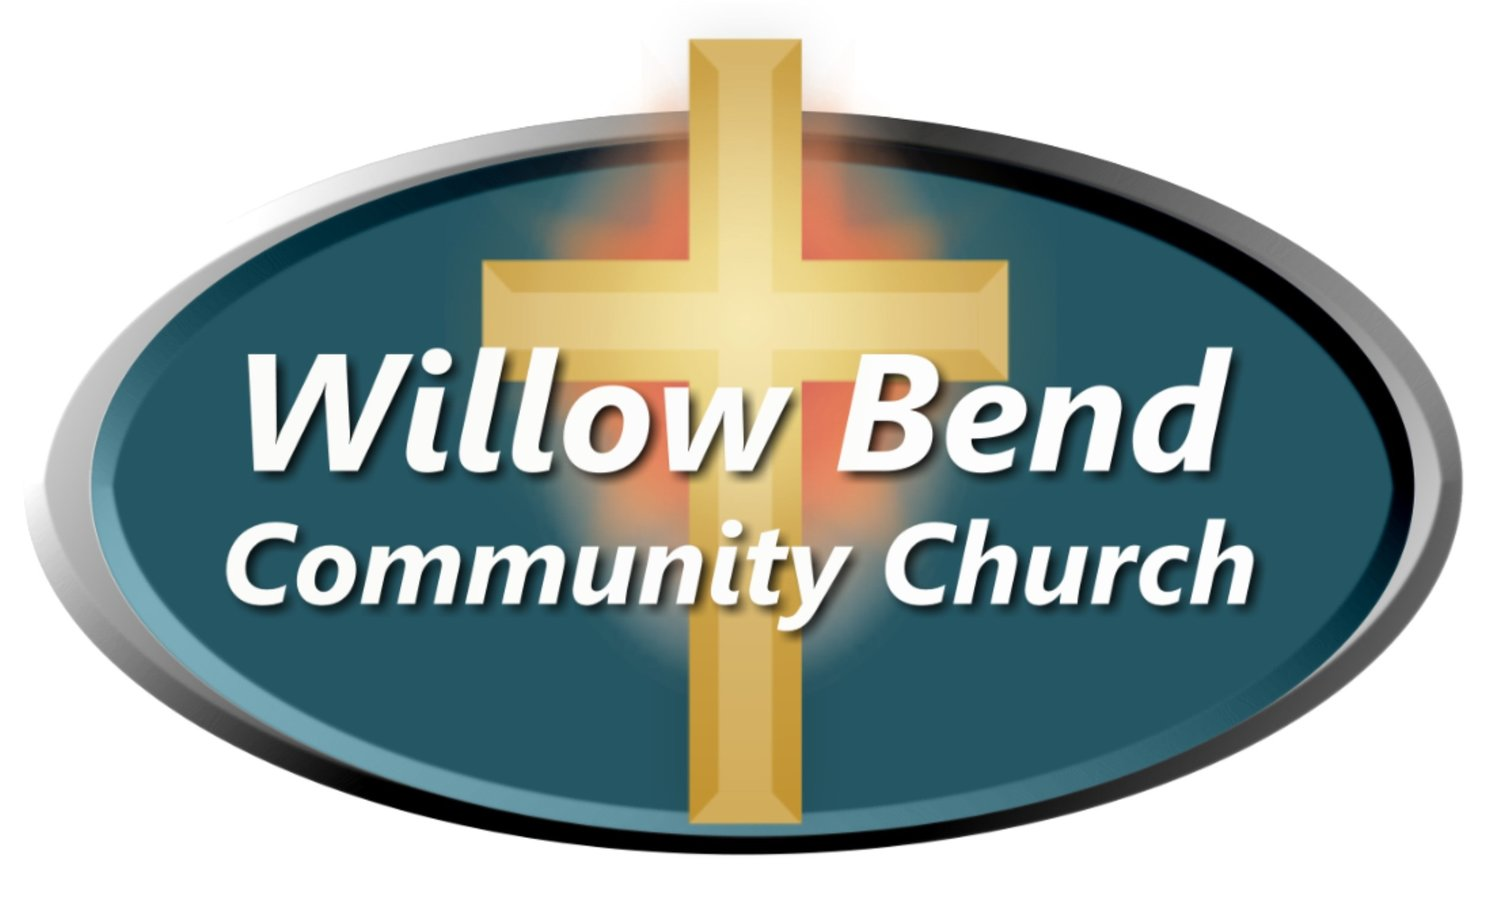 Willow Bend Community Church